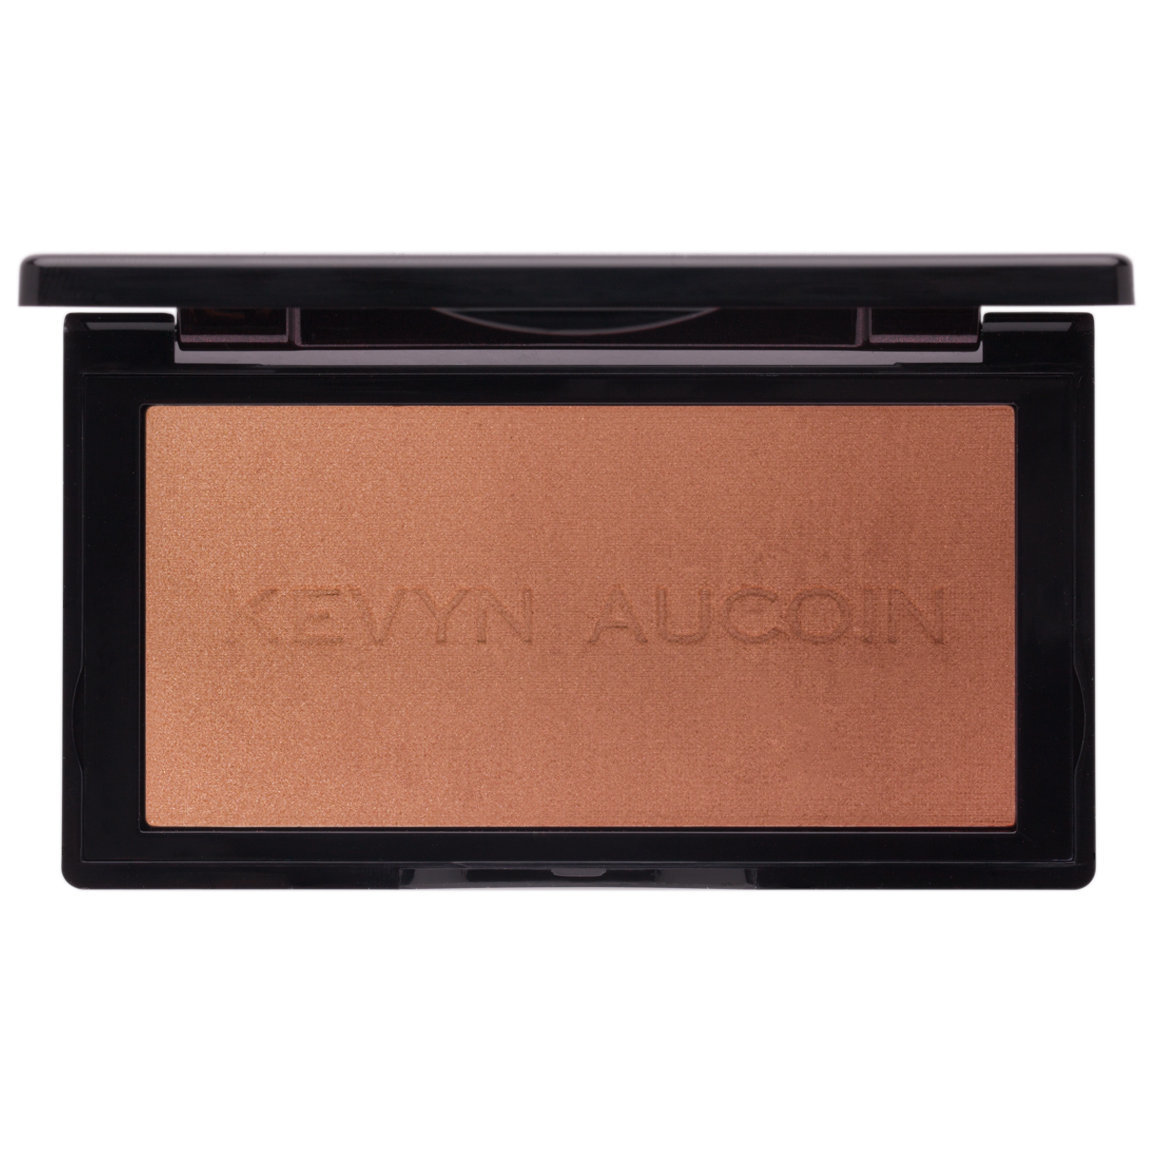 Kevyn Aucoin The Neo-Bronzer Dusk Medium alternative view 1 - product swatch.